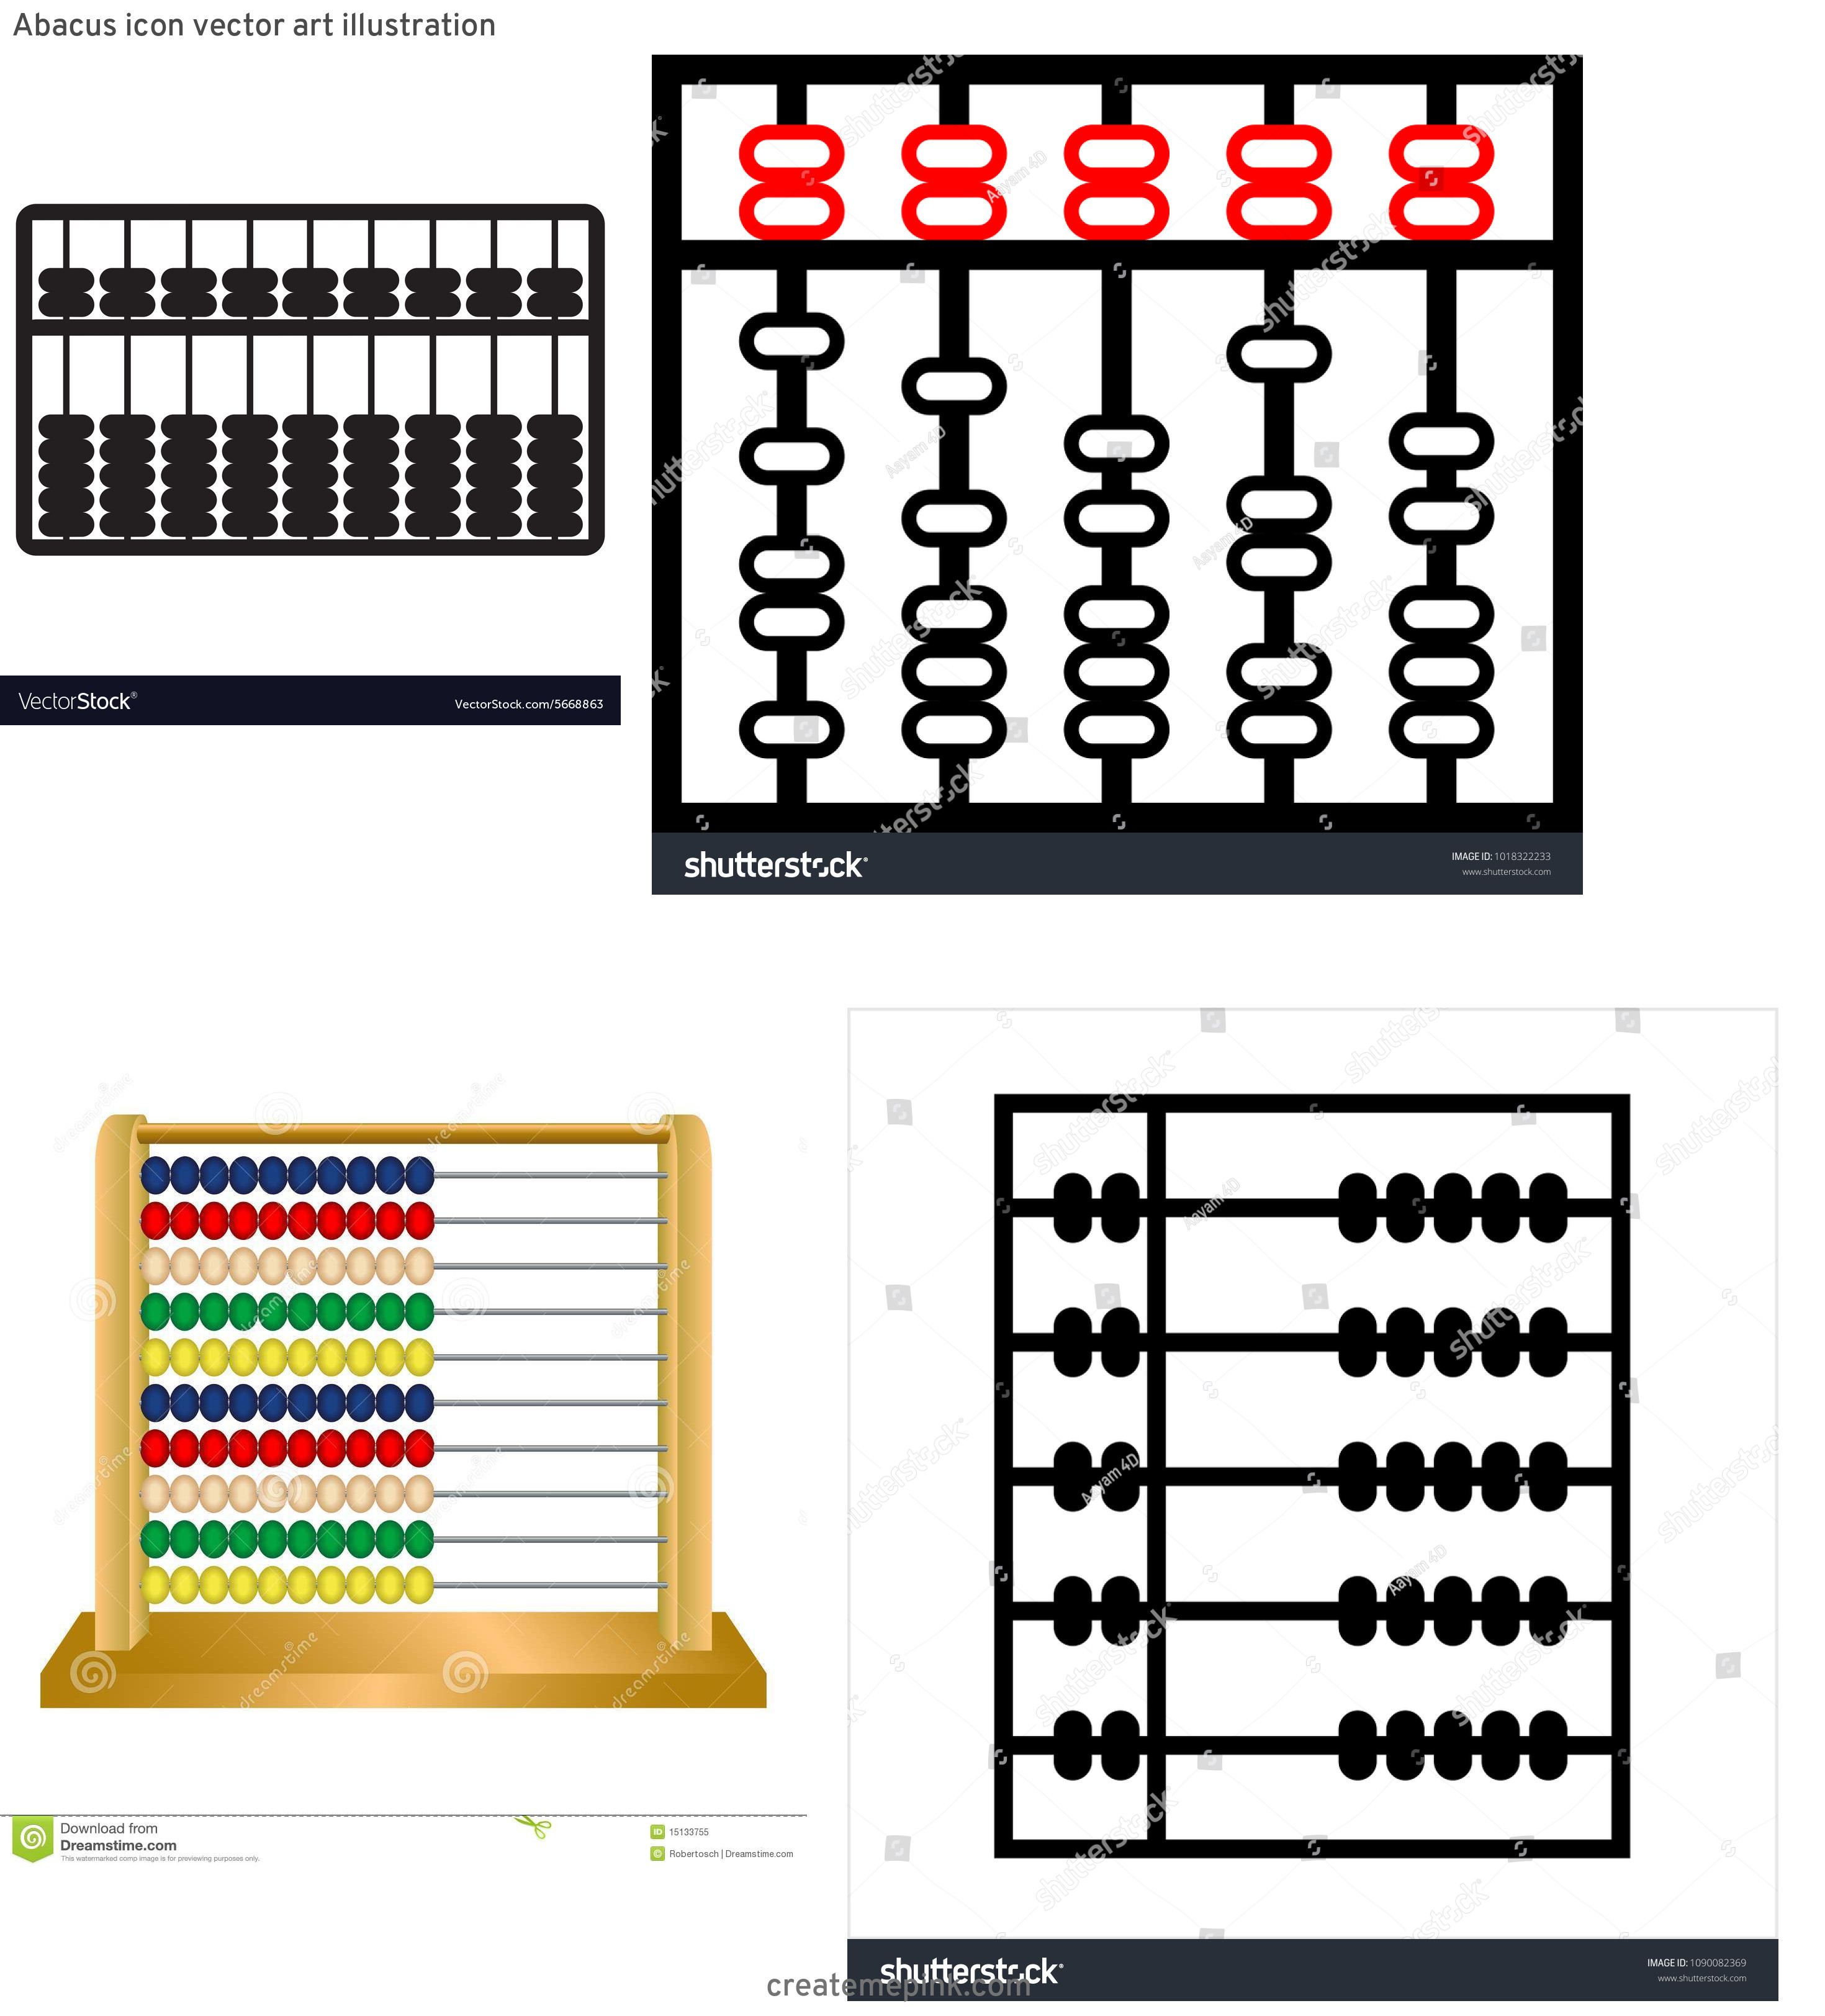 Abacus Vector Art: Abacus Icon Vector Art Illustration